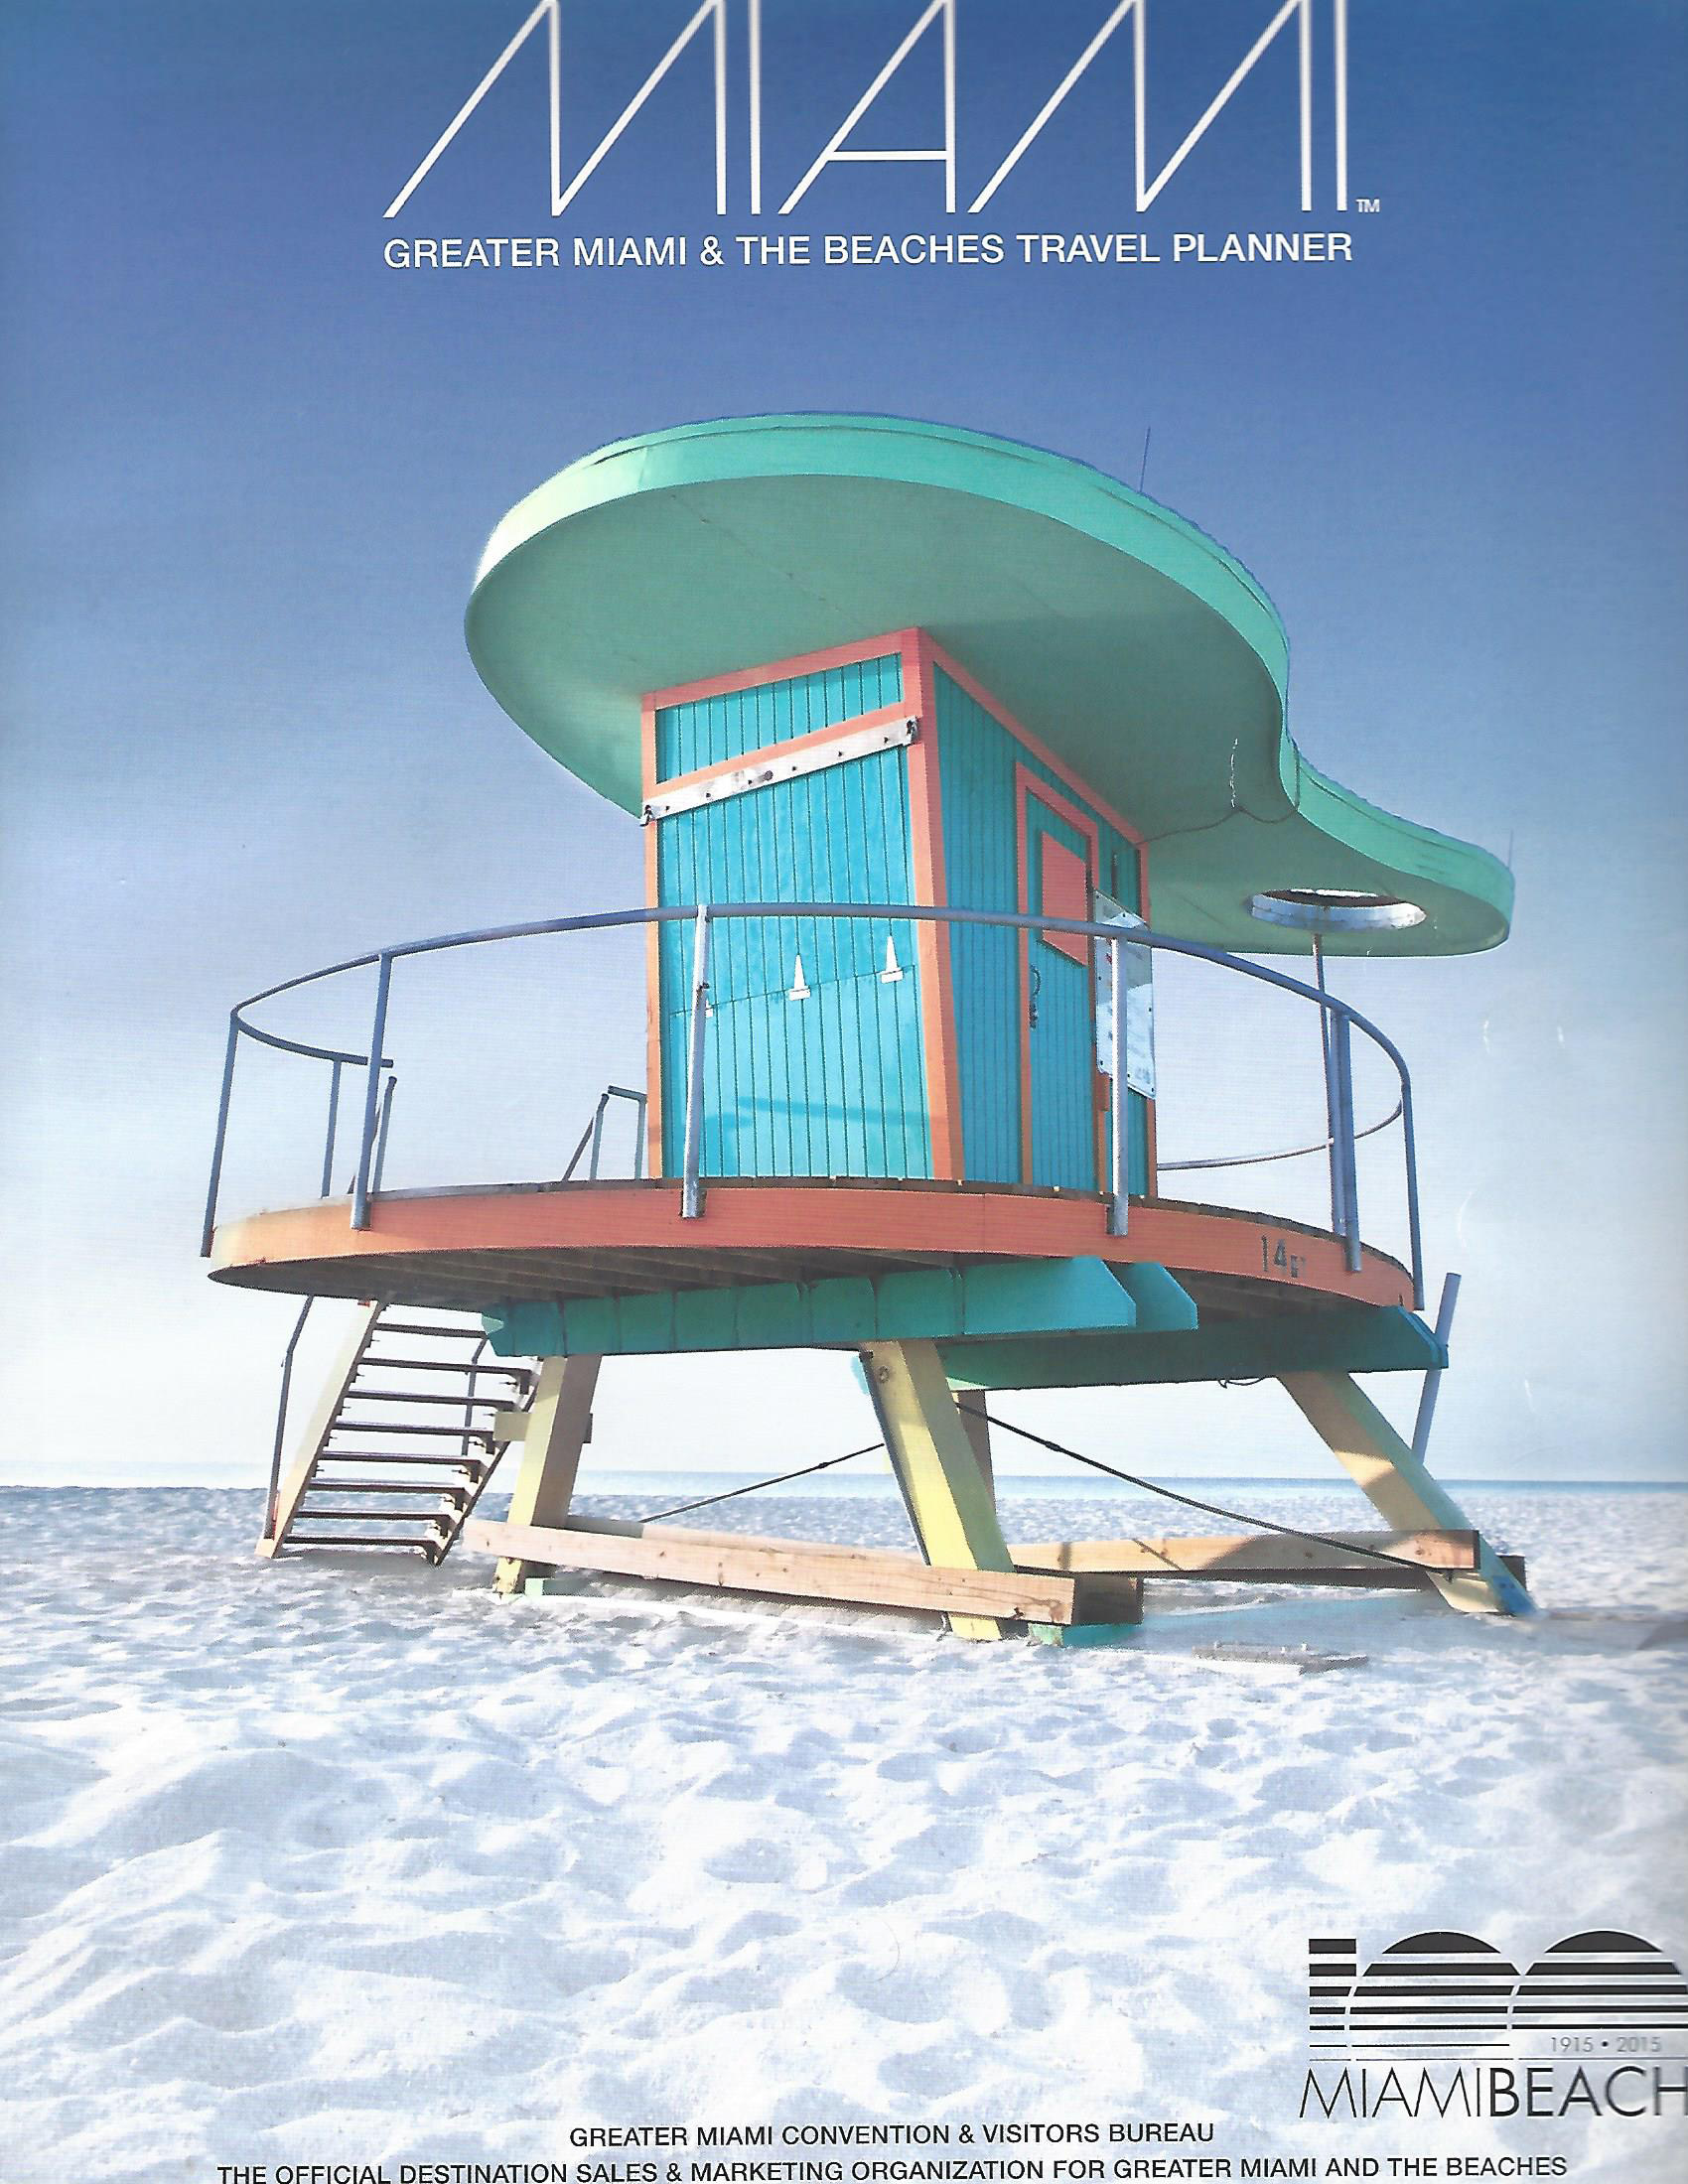 GREATER MIAMI & THE BEACHES VACATION PLANNER , 1998